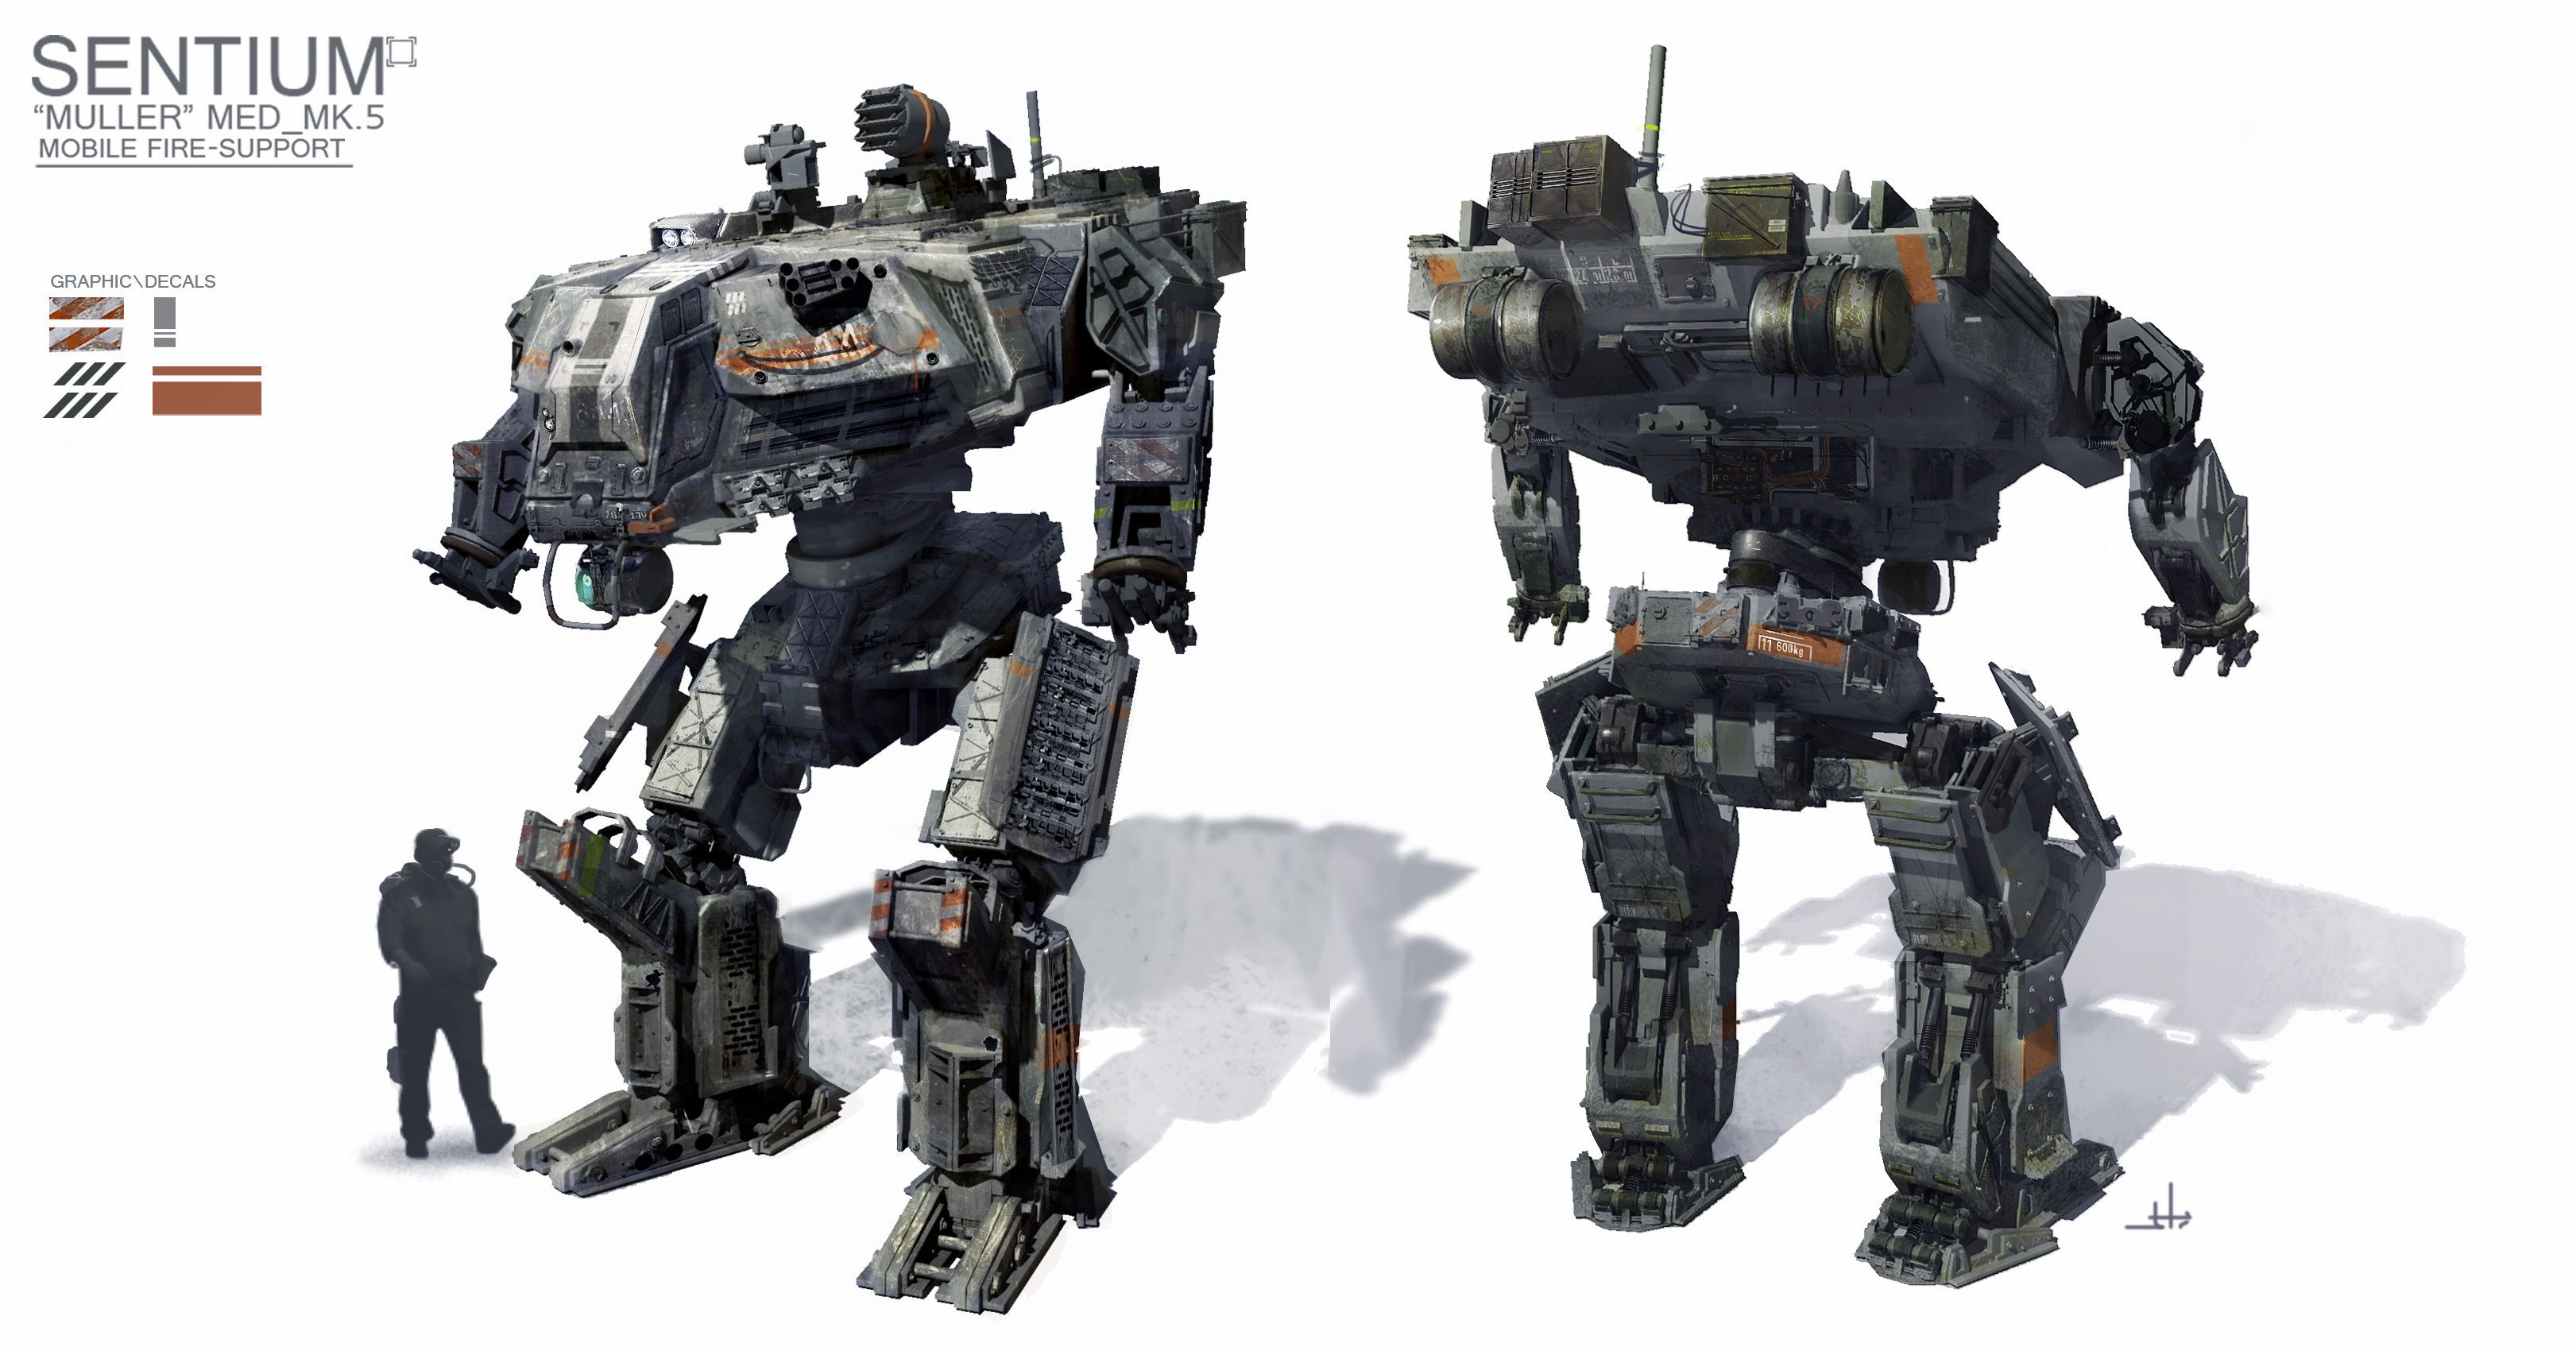 Gaming Trend: Even if you aren't a giant mech fan, you'll